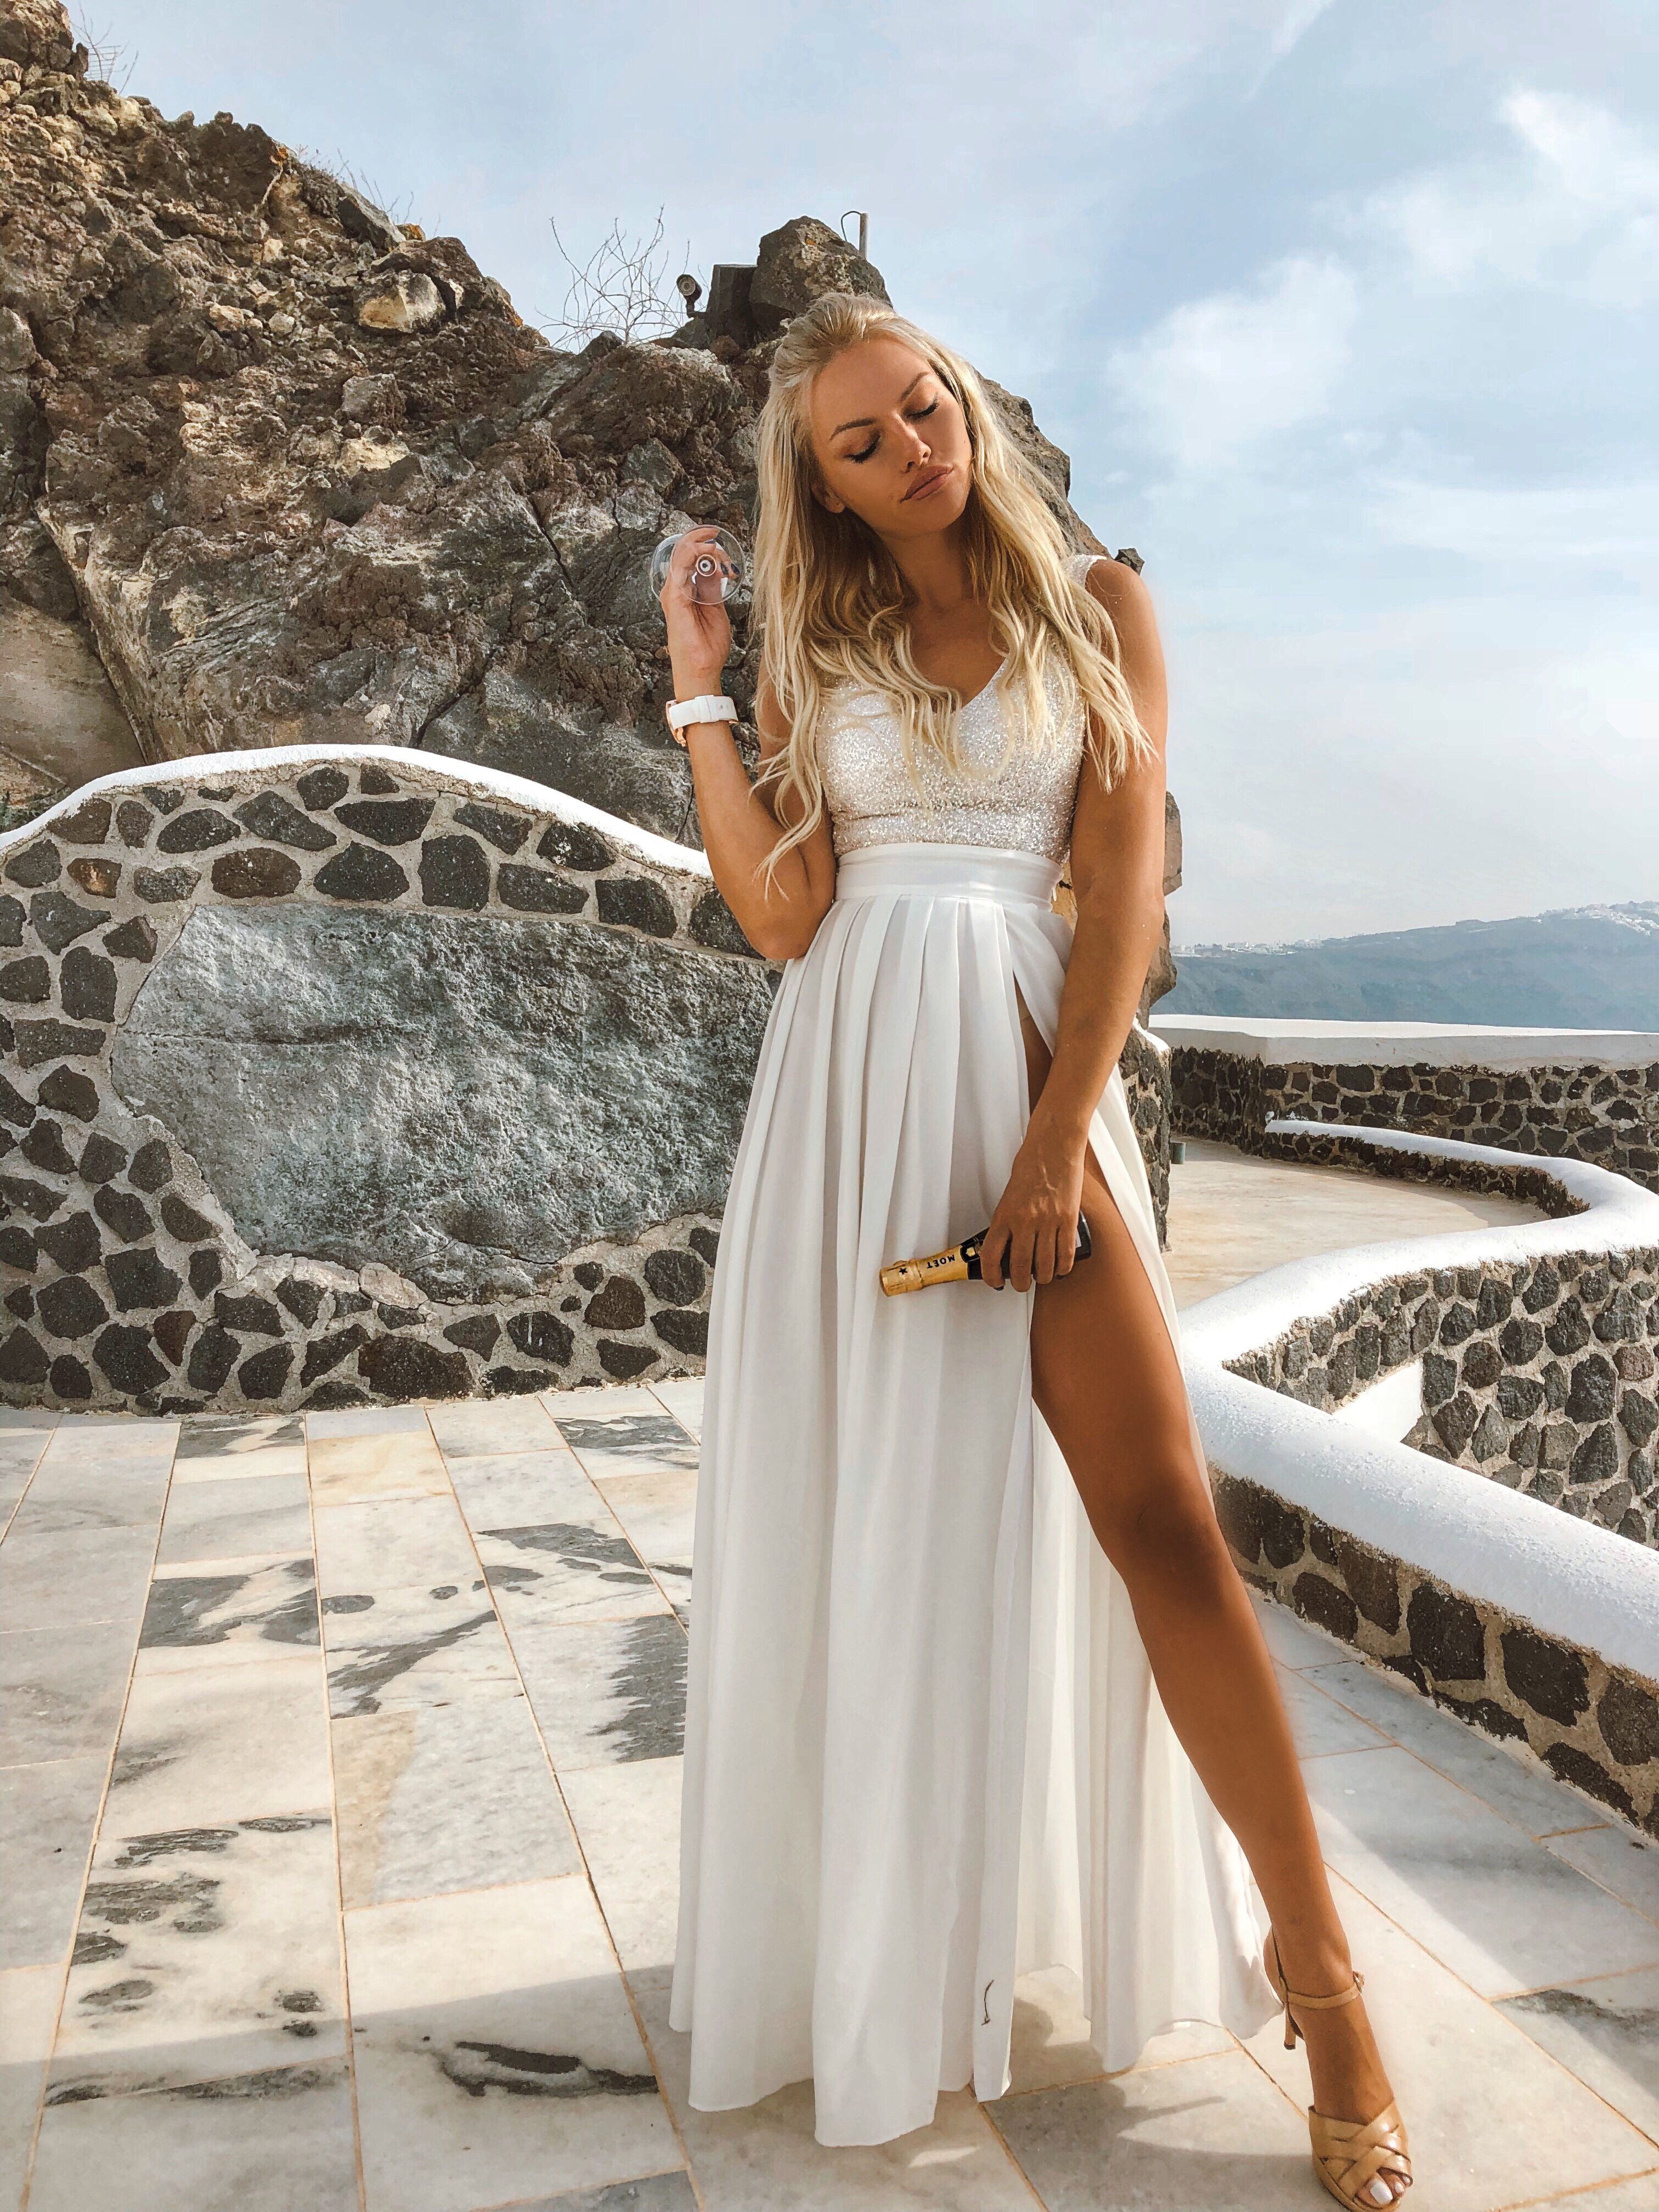 Pin By Natali Thanou On Style Wedding After Party After Wedding Party Dresses Dresses,Wedding Dresses For Mother Of The Bride 2020